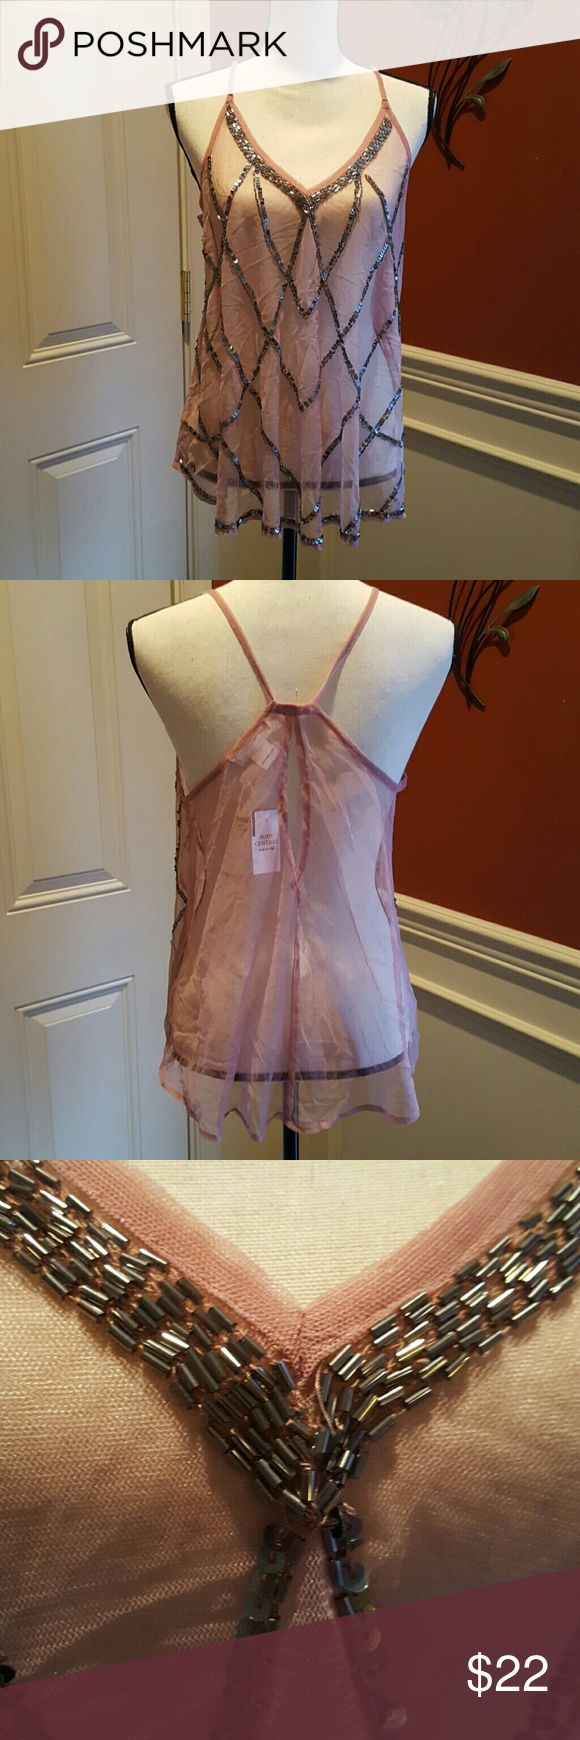 Body Central Sheer Embellished Camisole NWT NWT Dressy, Sheer, sequins& a key hole backed Camisole. Beautiful! Body Central Tops Camisoles